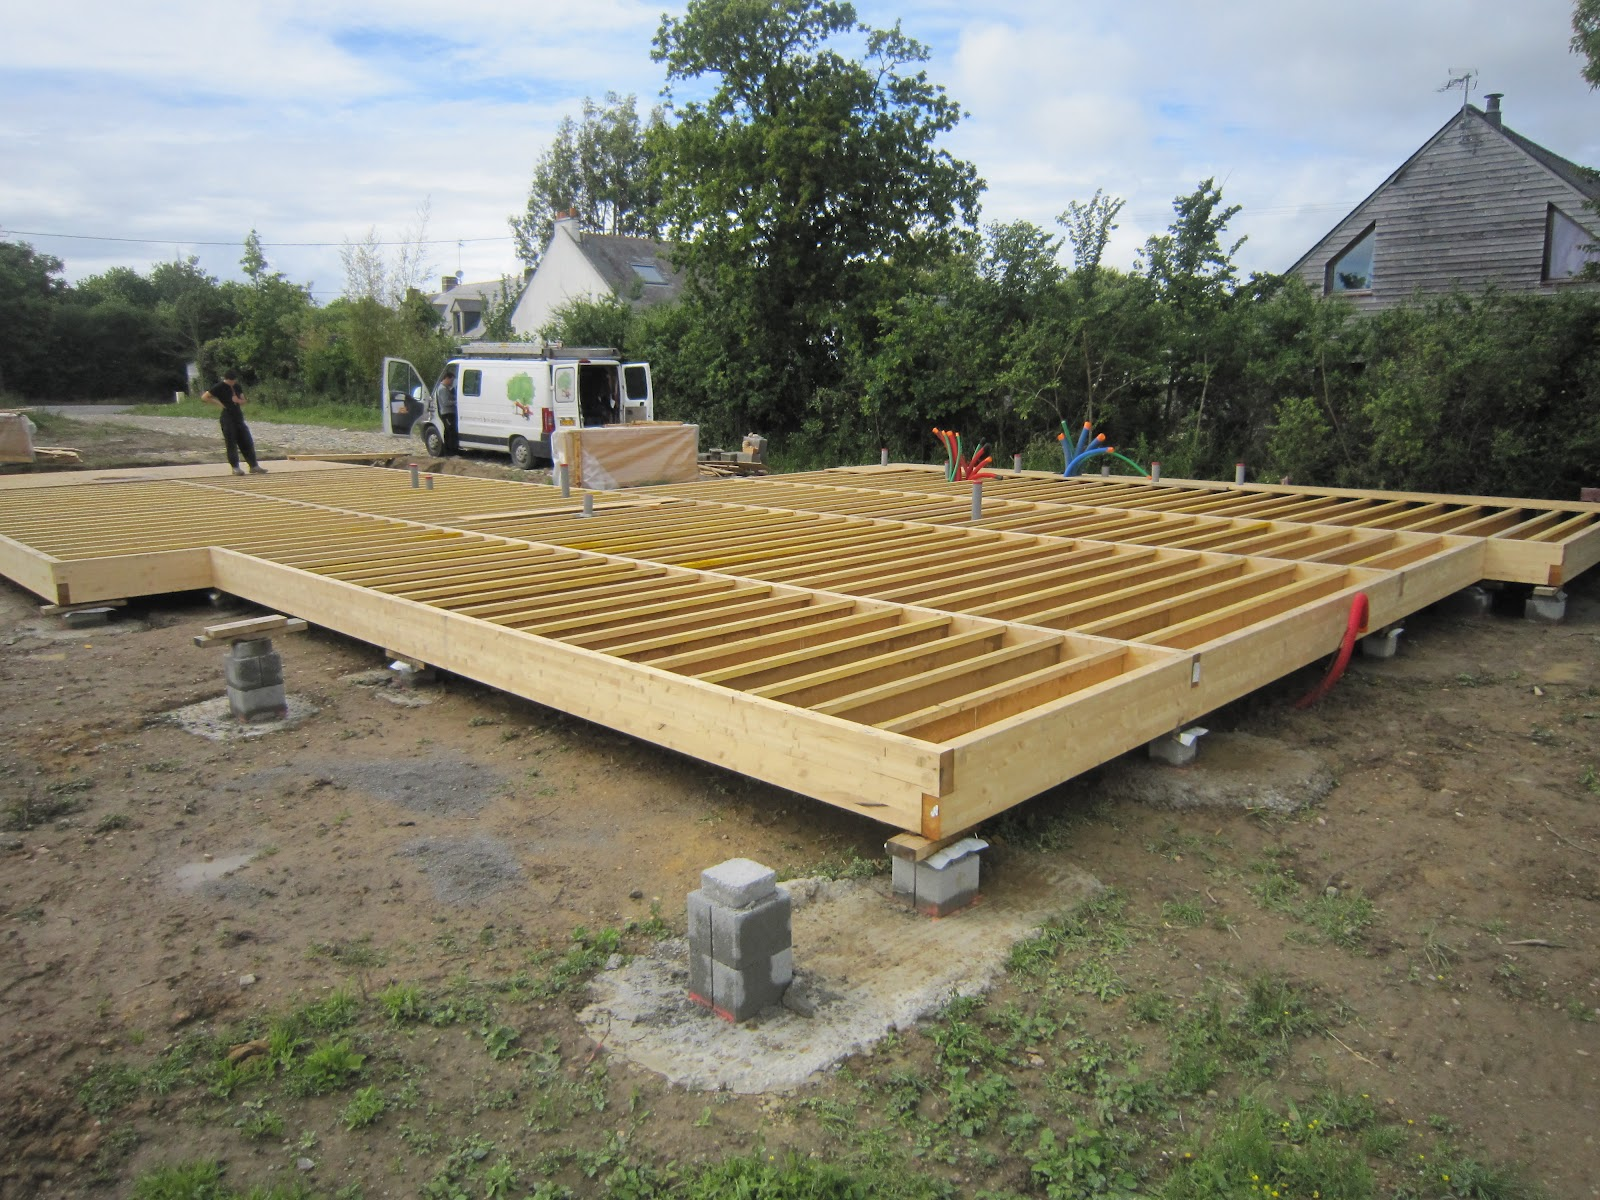 Construction terrasse bois sur dalle beton diverses id es de conception de patio for Construction en bois ou beton